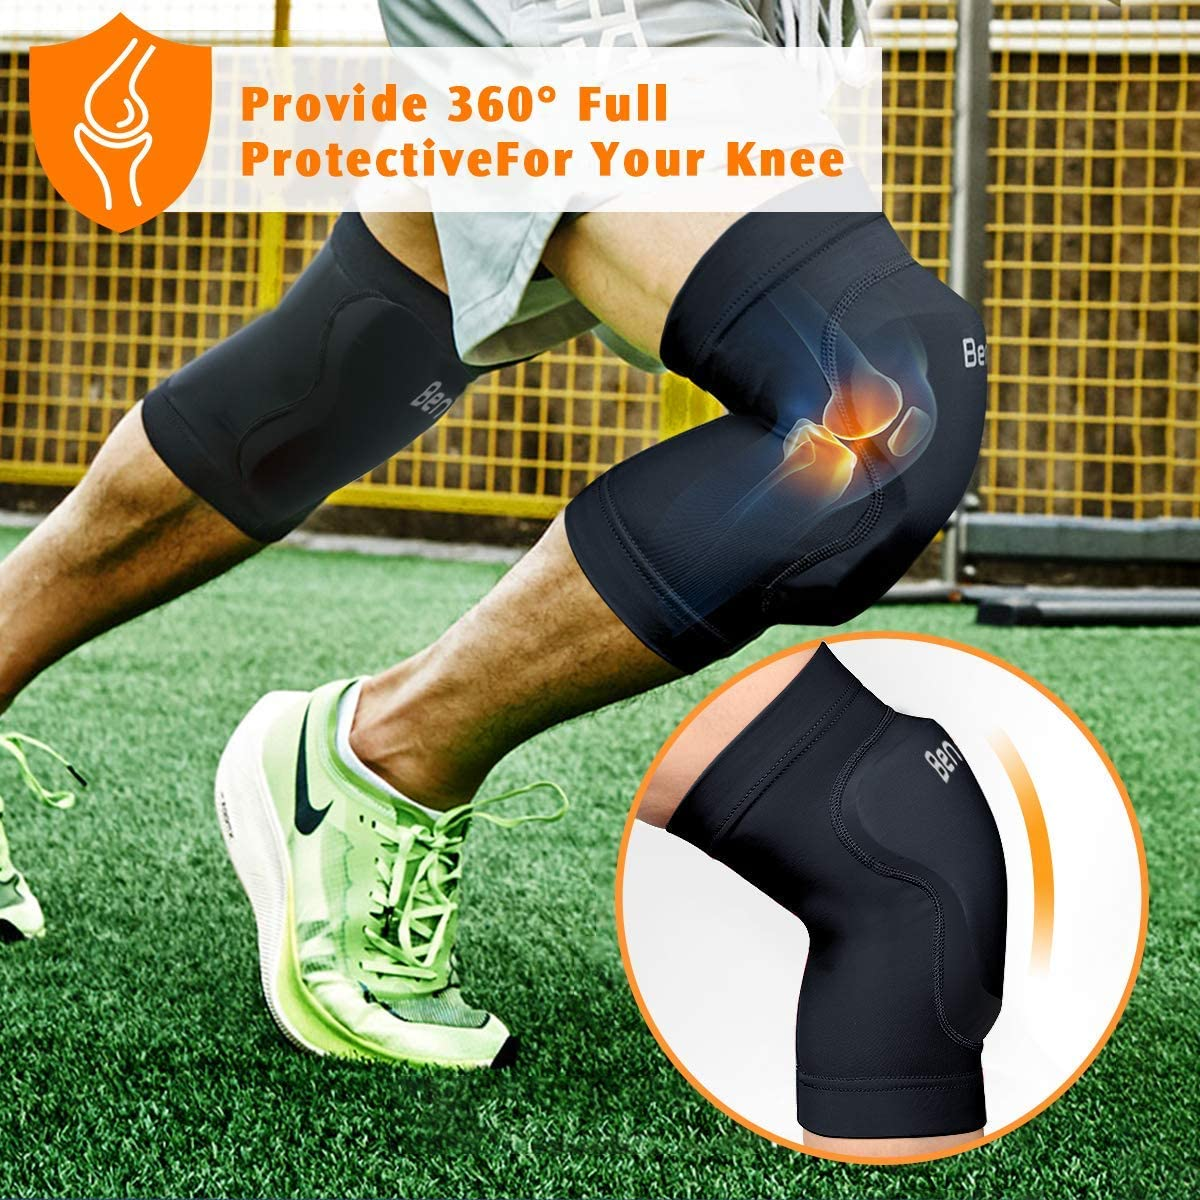 1 Pair BenKen Protective Knee Pads for Volleyball Dance Basketball Riding Outdoor Sport,Collision Avoidance Anti-slip Rubber Knee Protector Sleeve for Men/&Women/&Teens